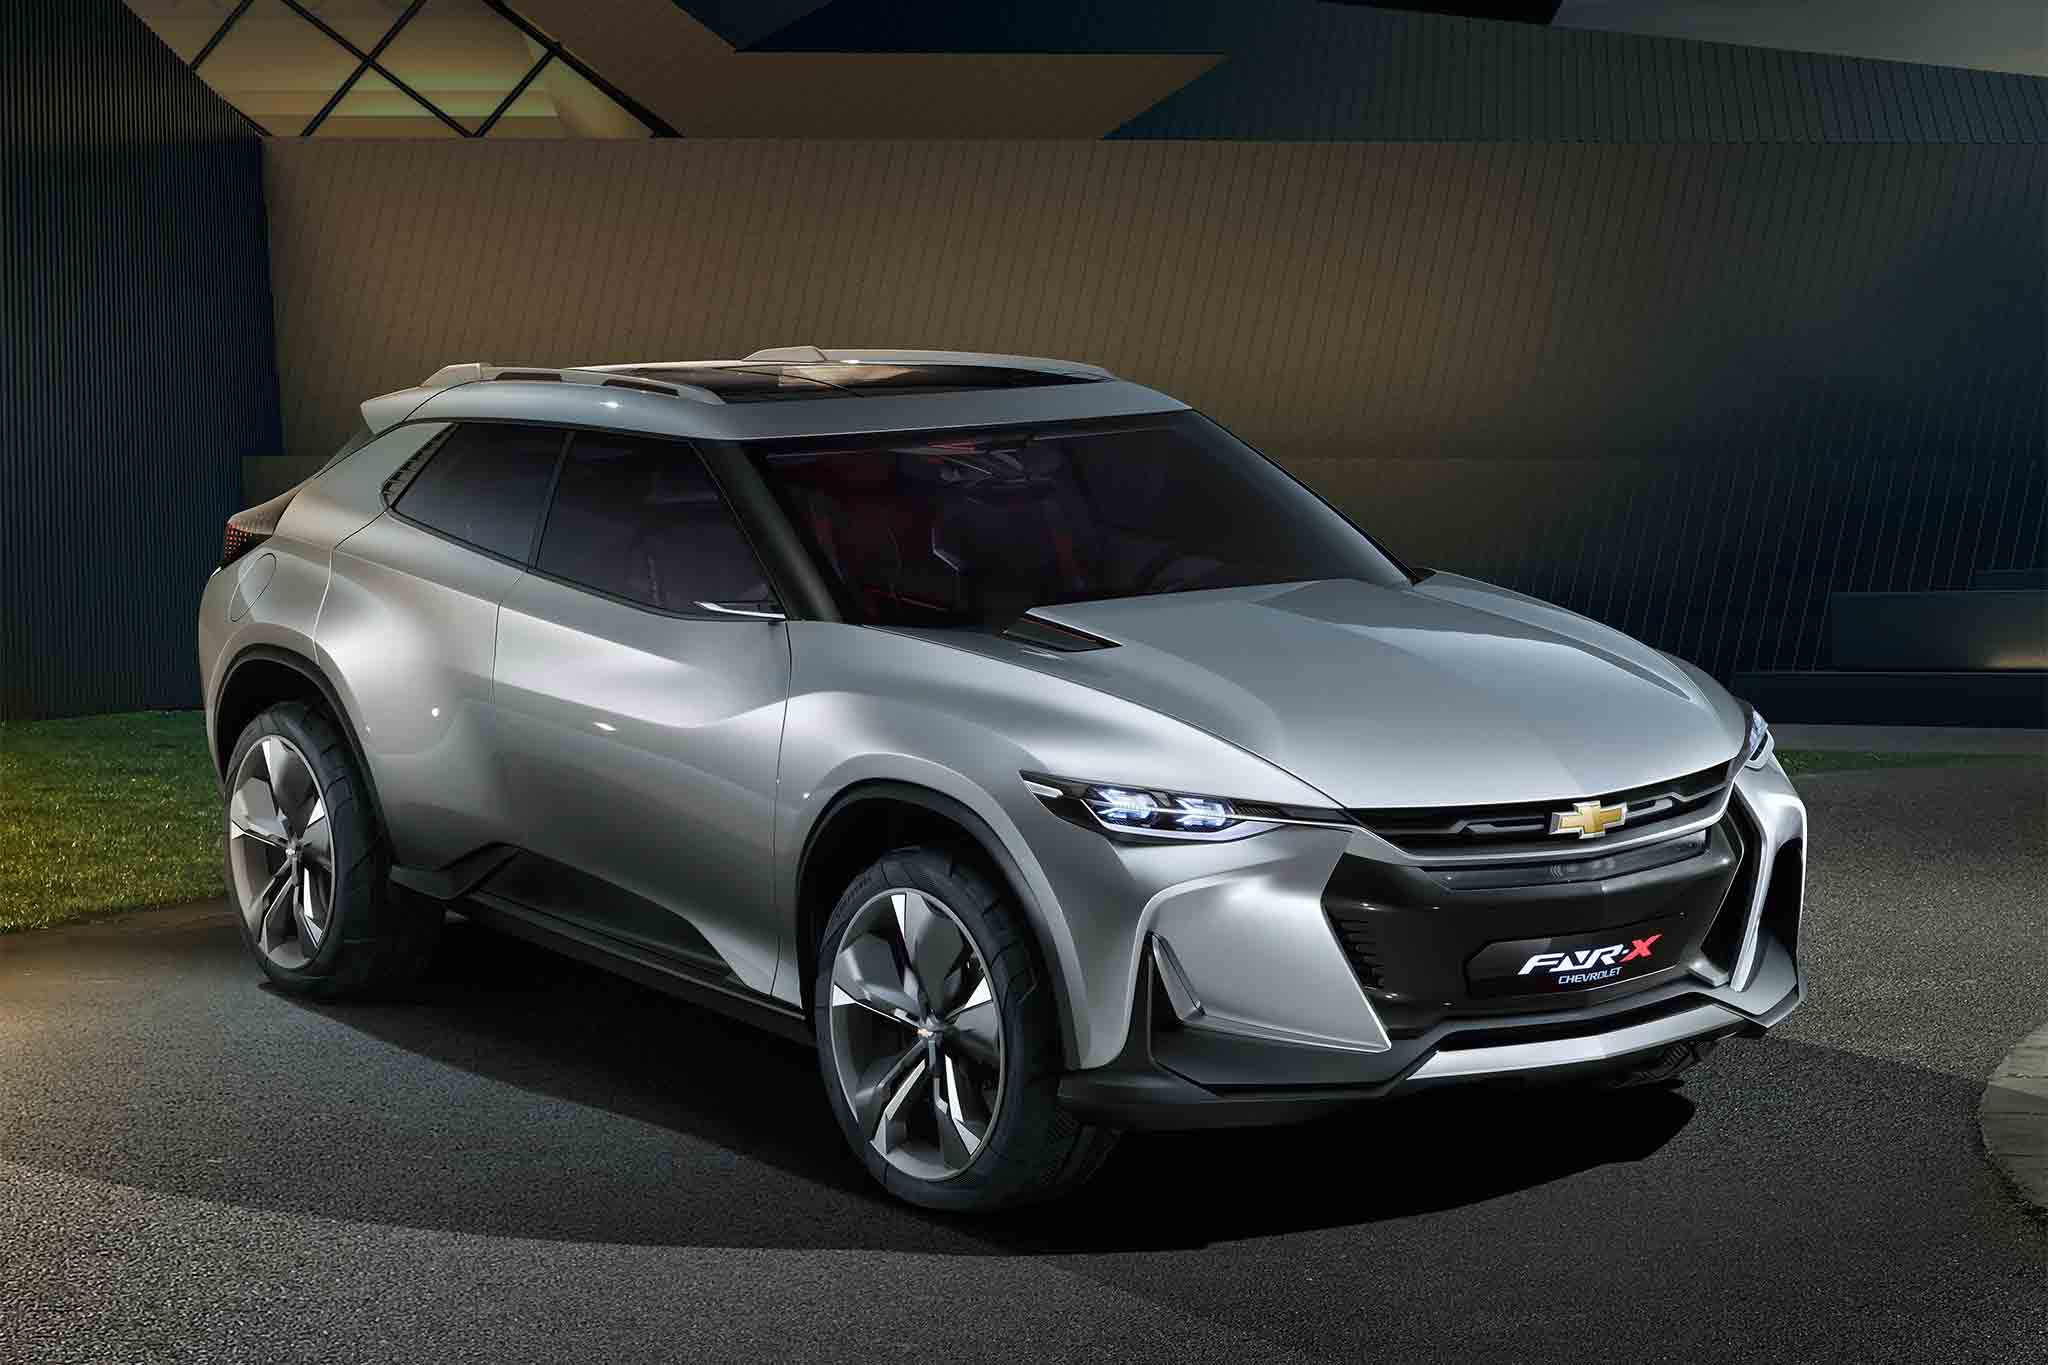 Chevrolet FNR X All Purpose Sports Concept Vehicle Front Three Quarter